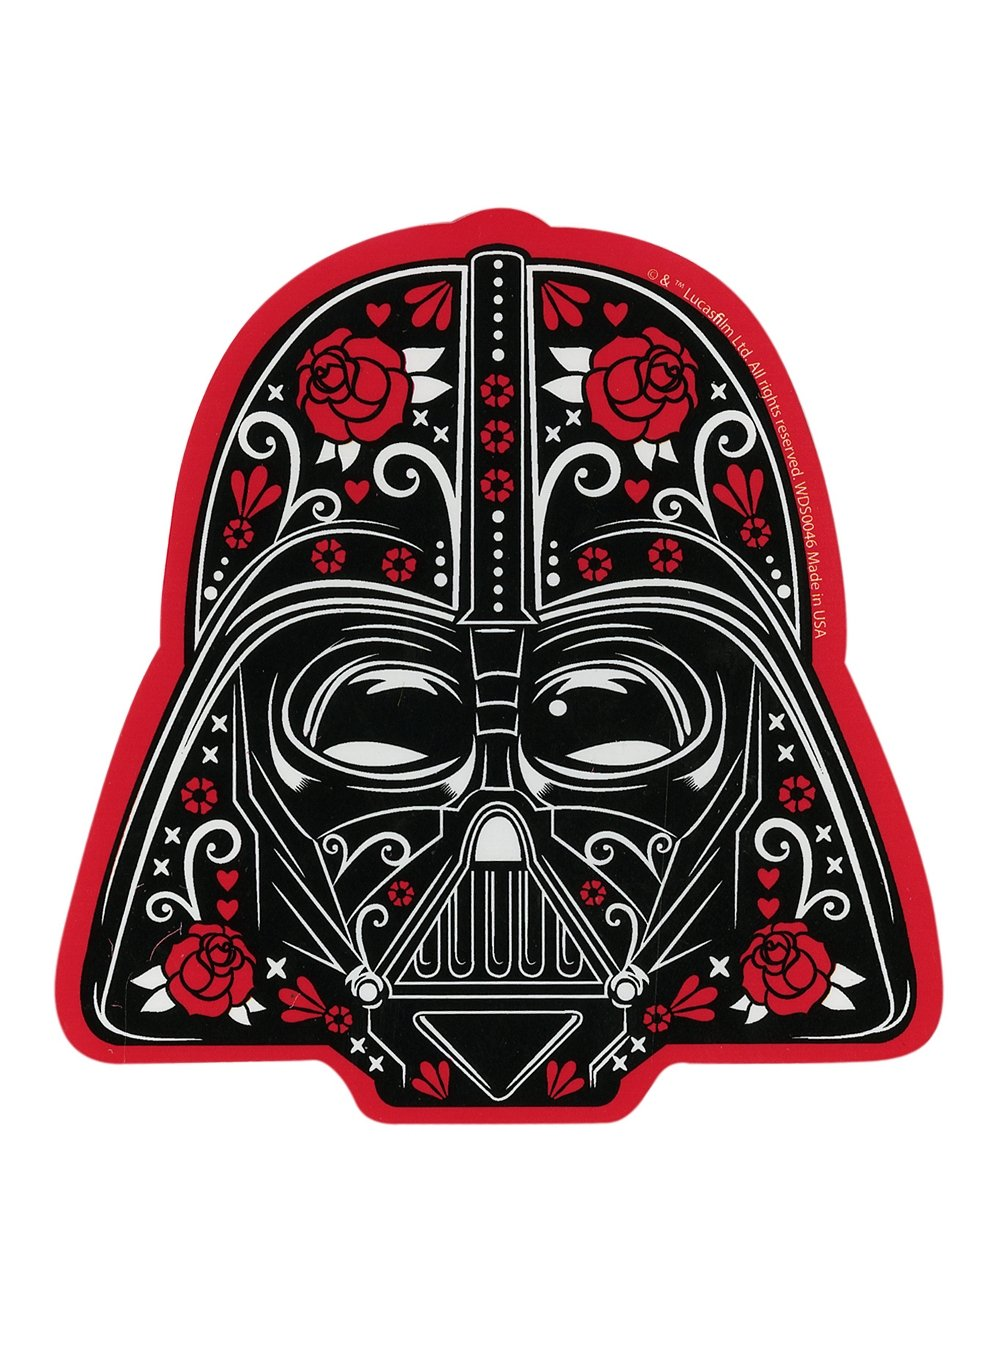 Darth Vader Sugar Skull Sticker